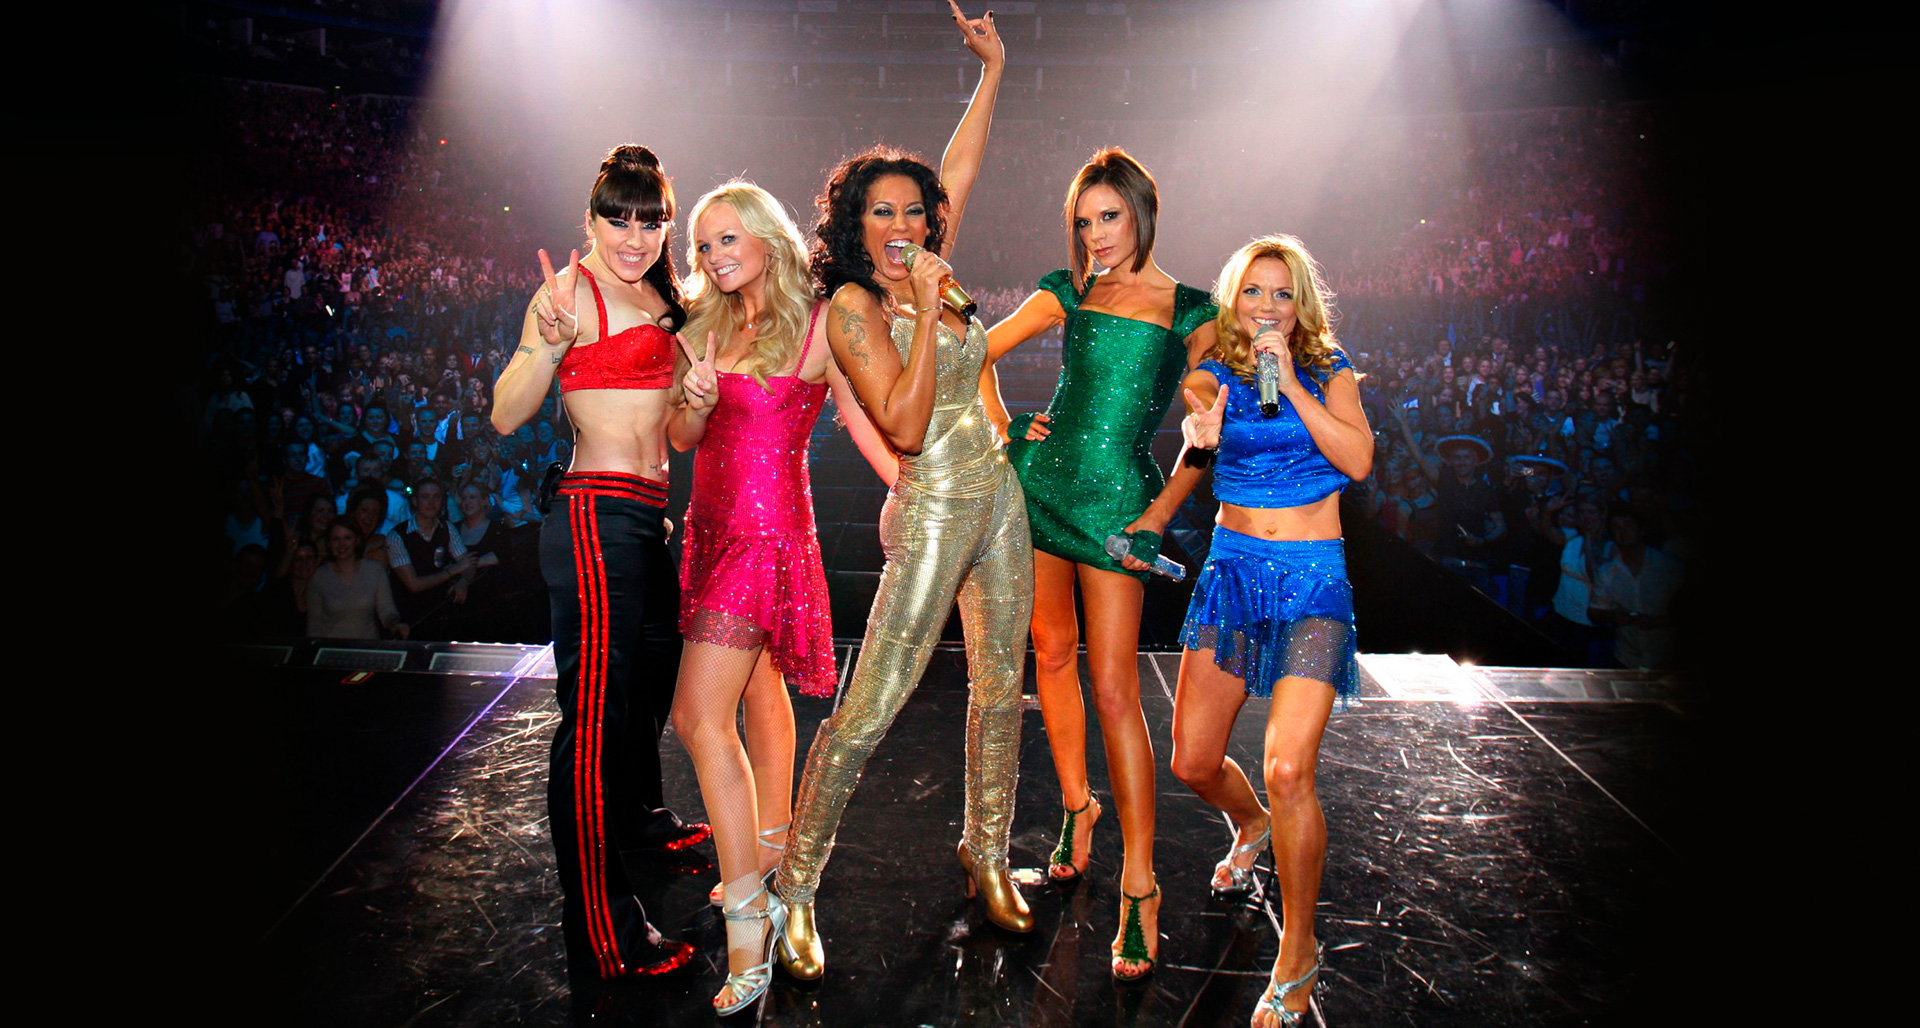 THE RETURN OF THE SPICE GIRLS 2